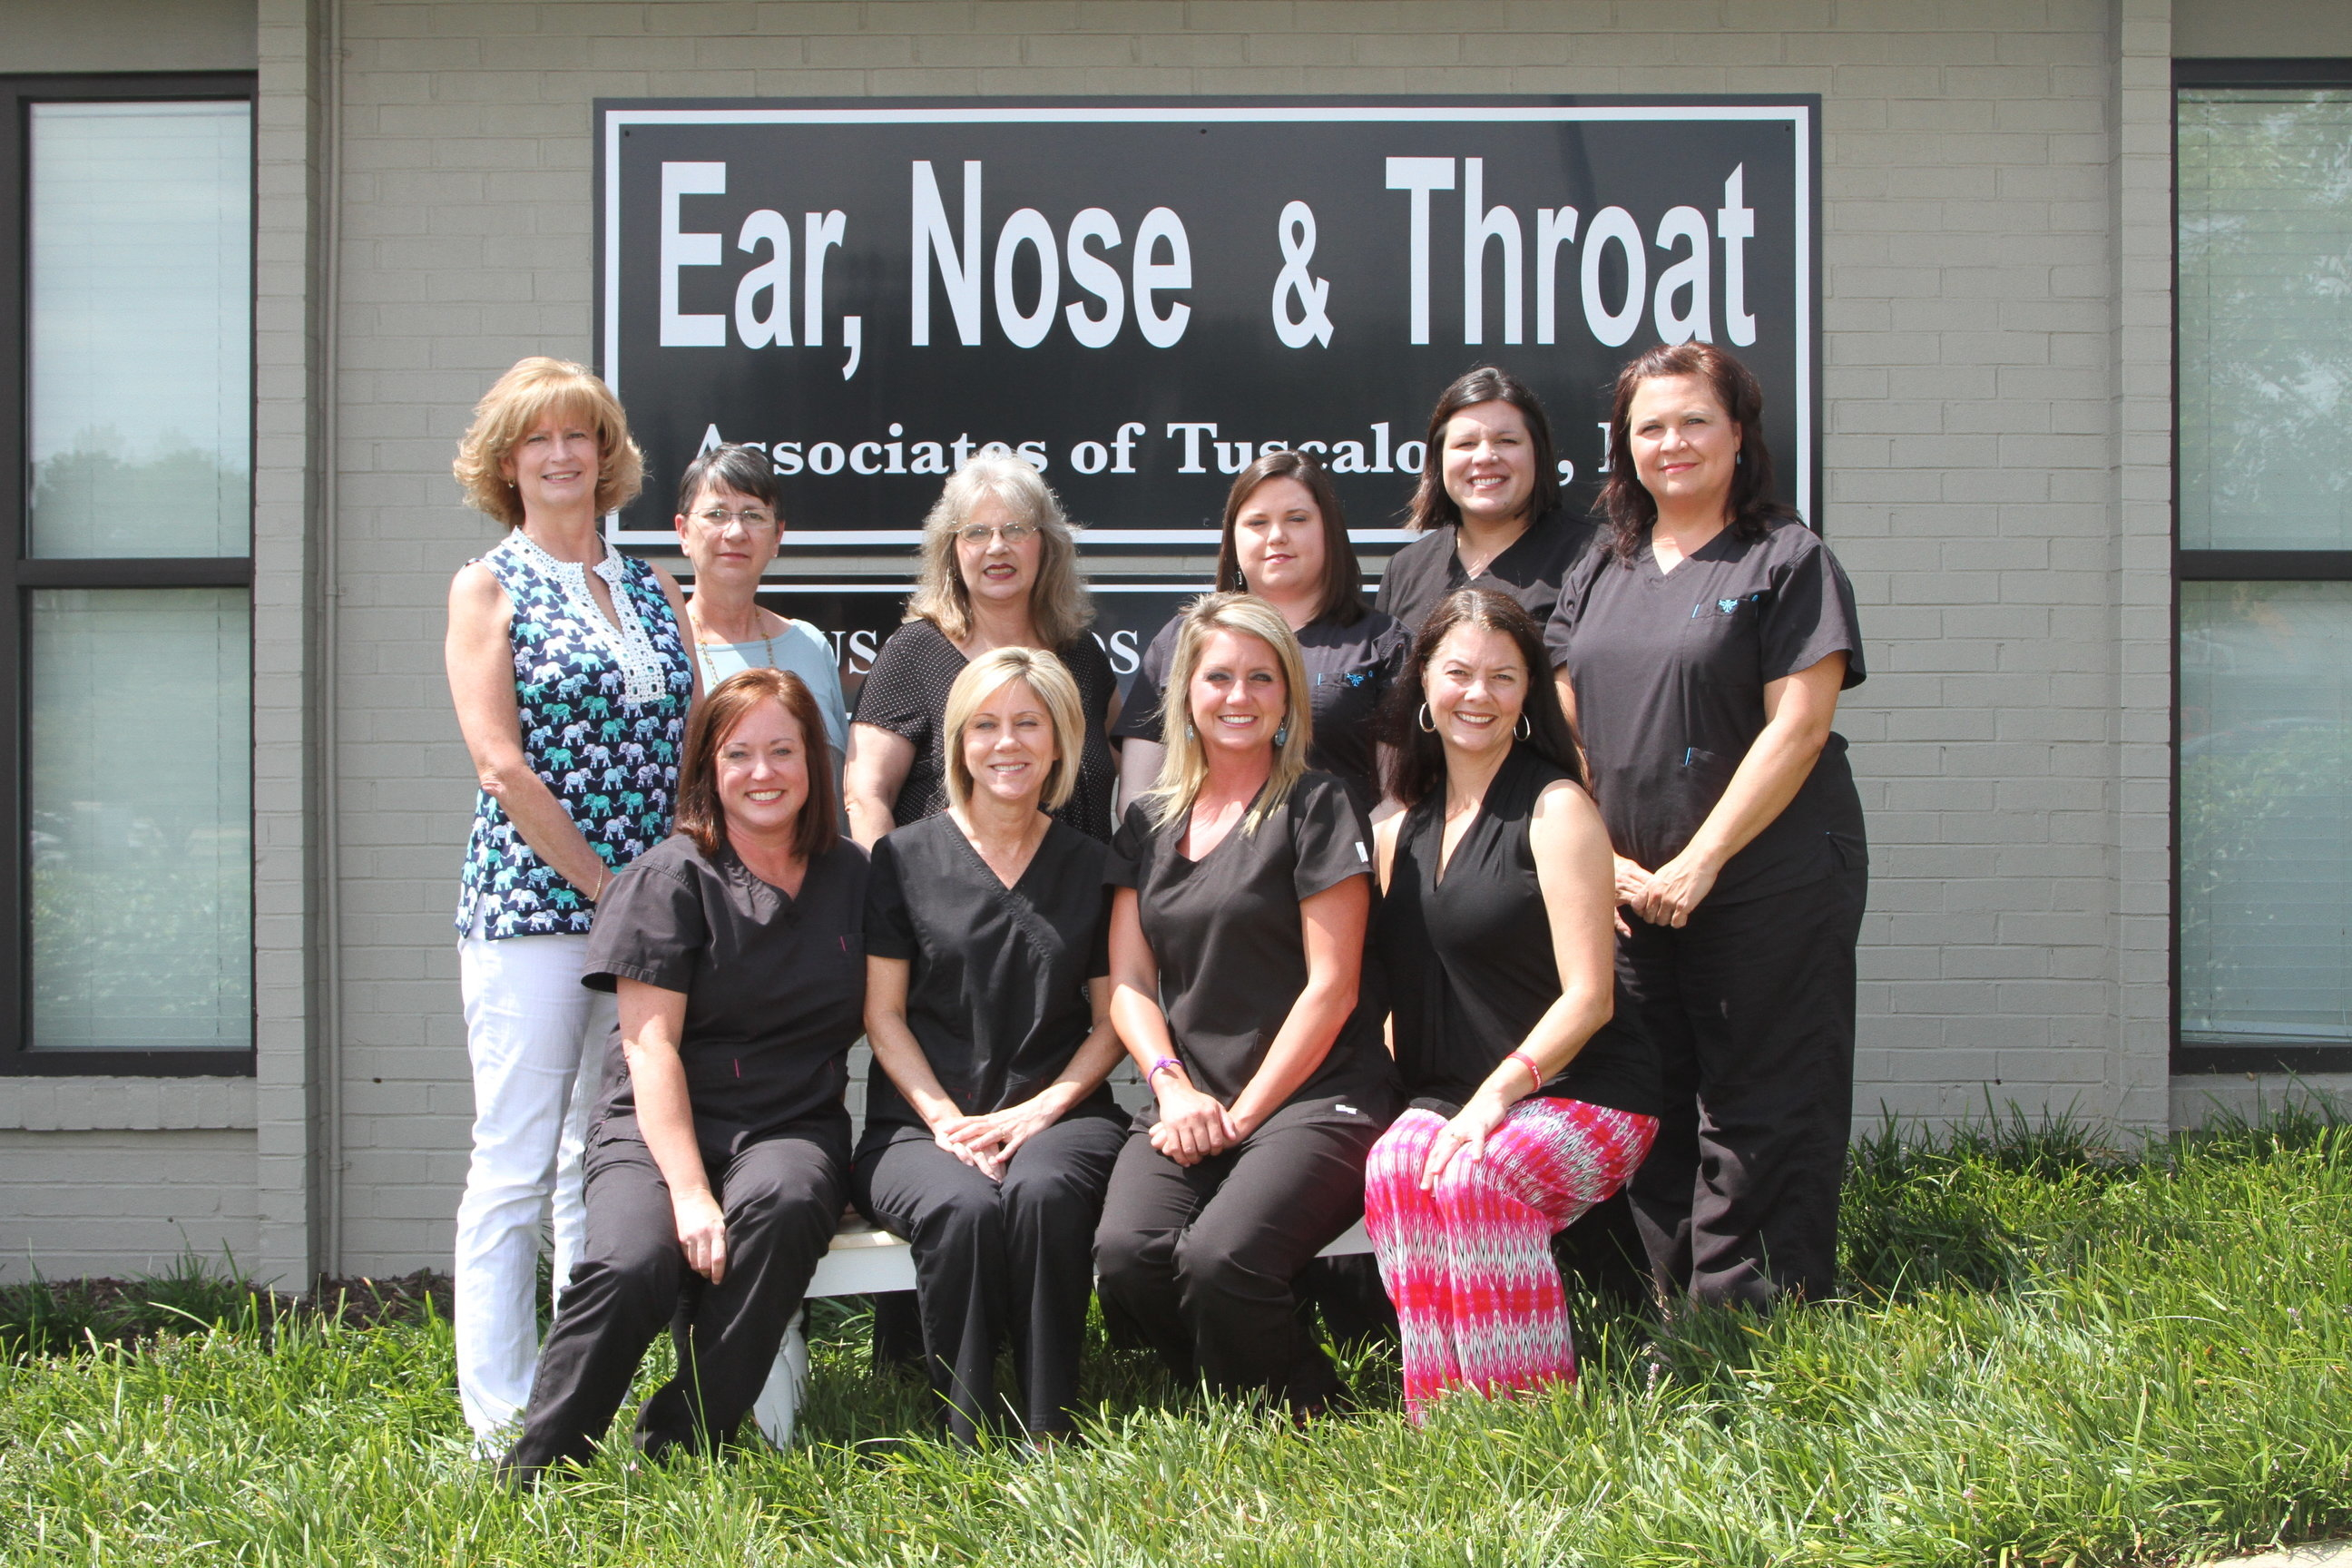 Www Ear Nose Throat Specialist Com